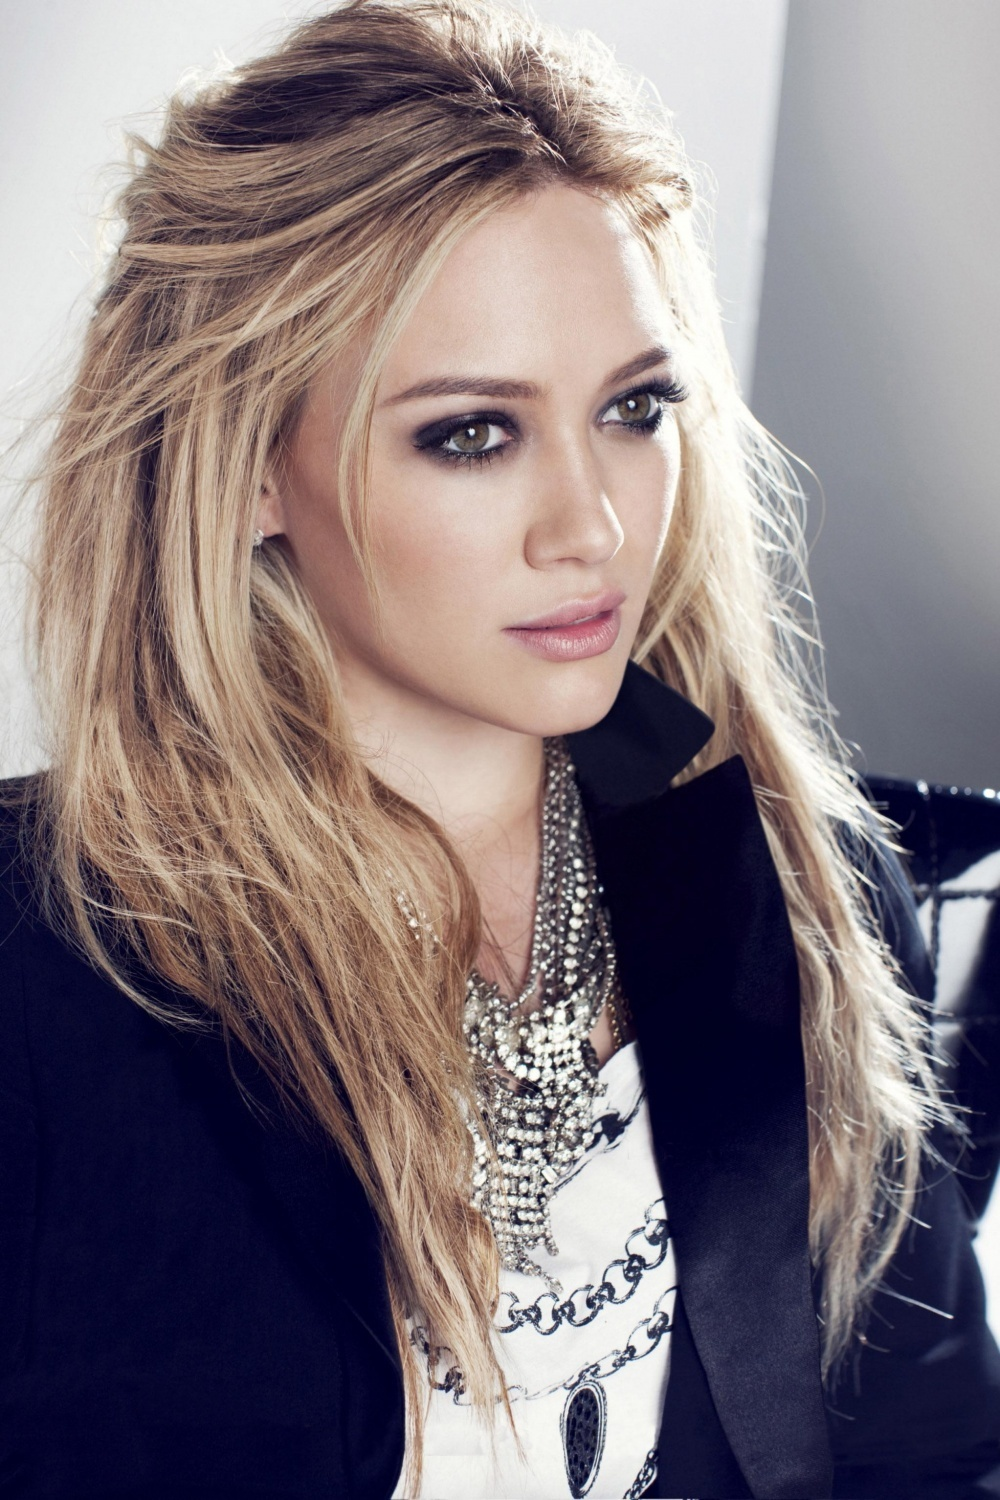 Hilary Duff: Hilary Duff Photoshoot хилари дафф